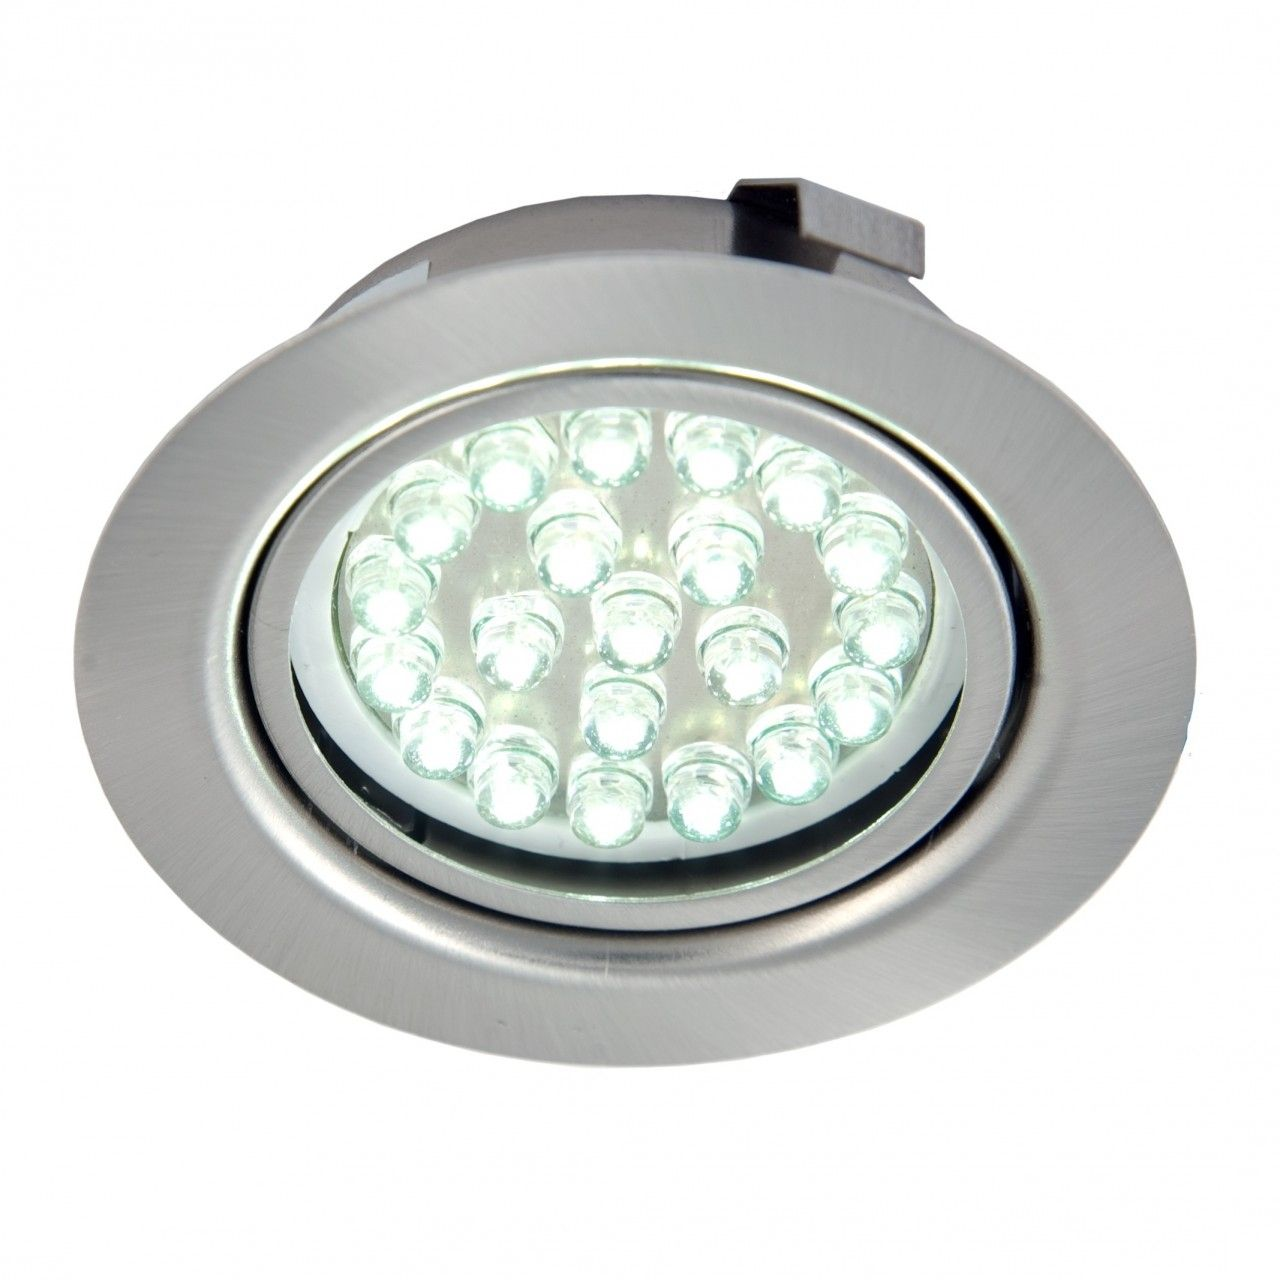 Led bulbs for recessed can lighting httpjohncow led bulbs for recessed can lighting aloadofball Gallery